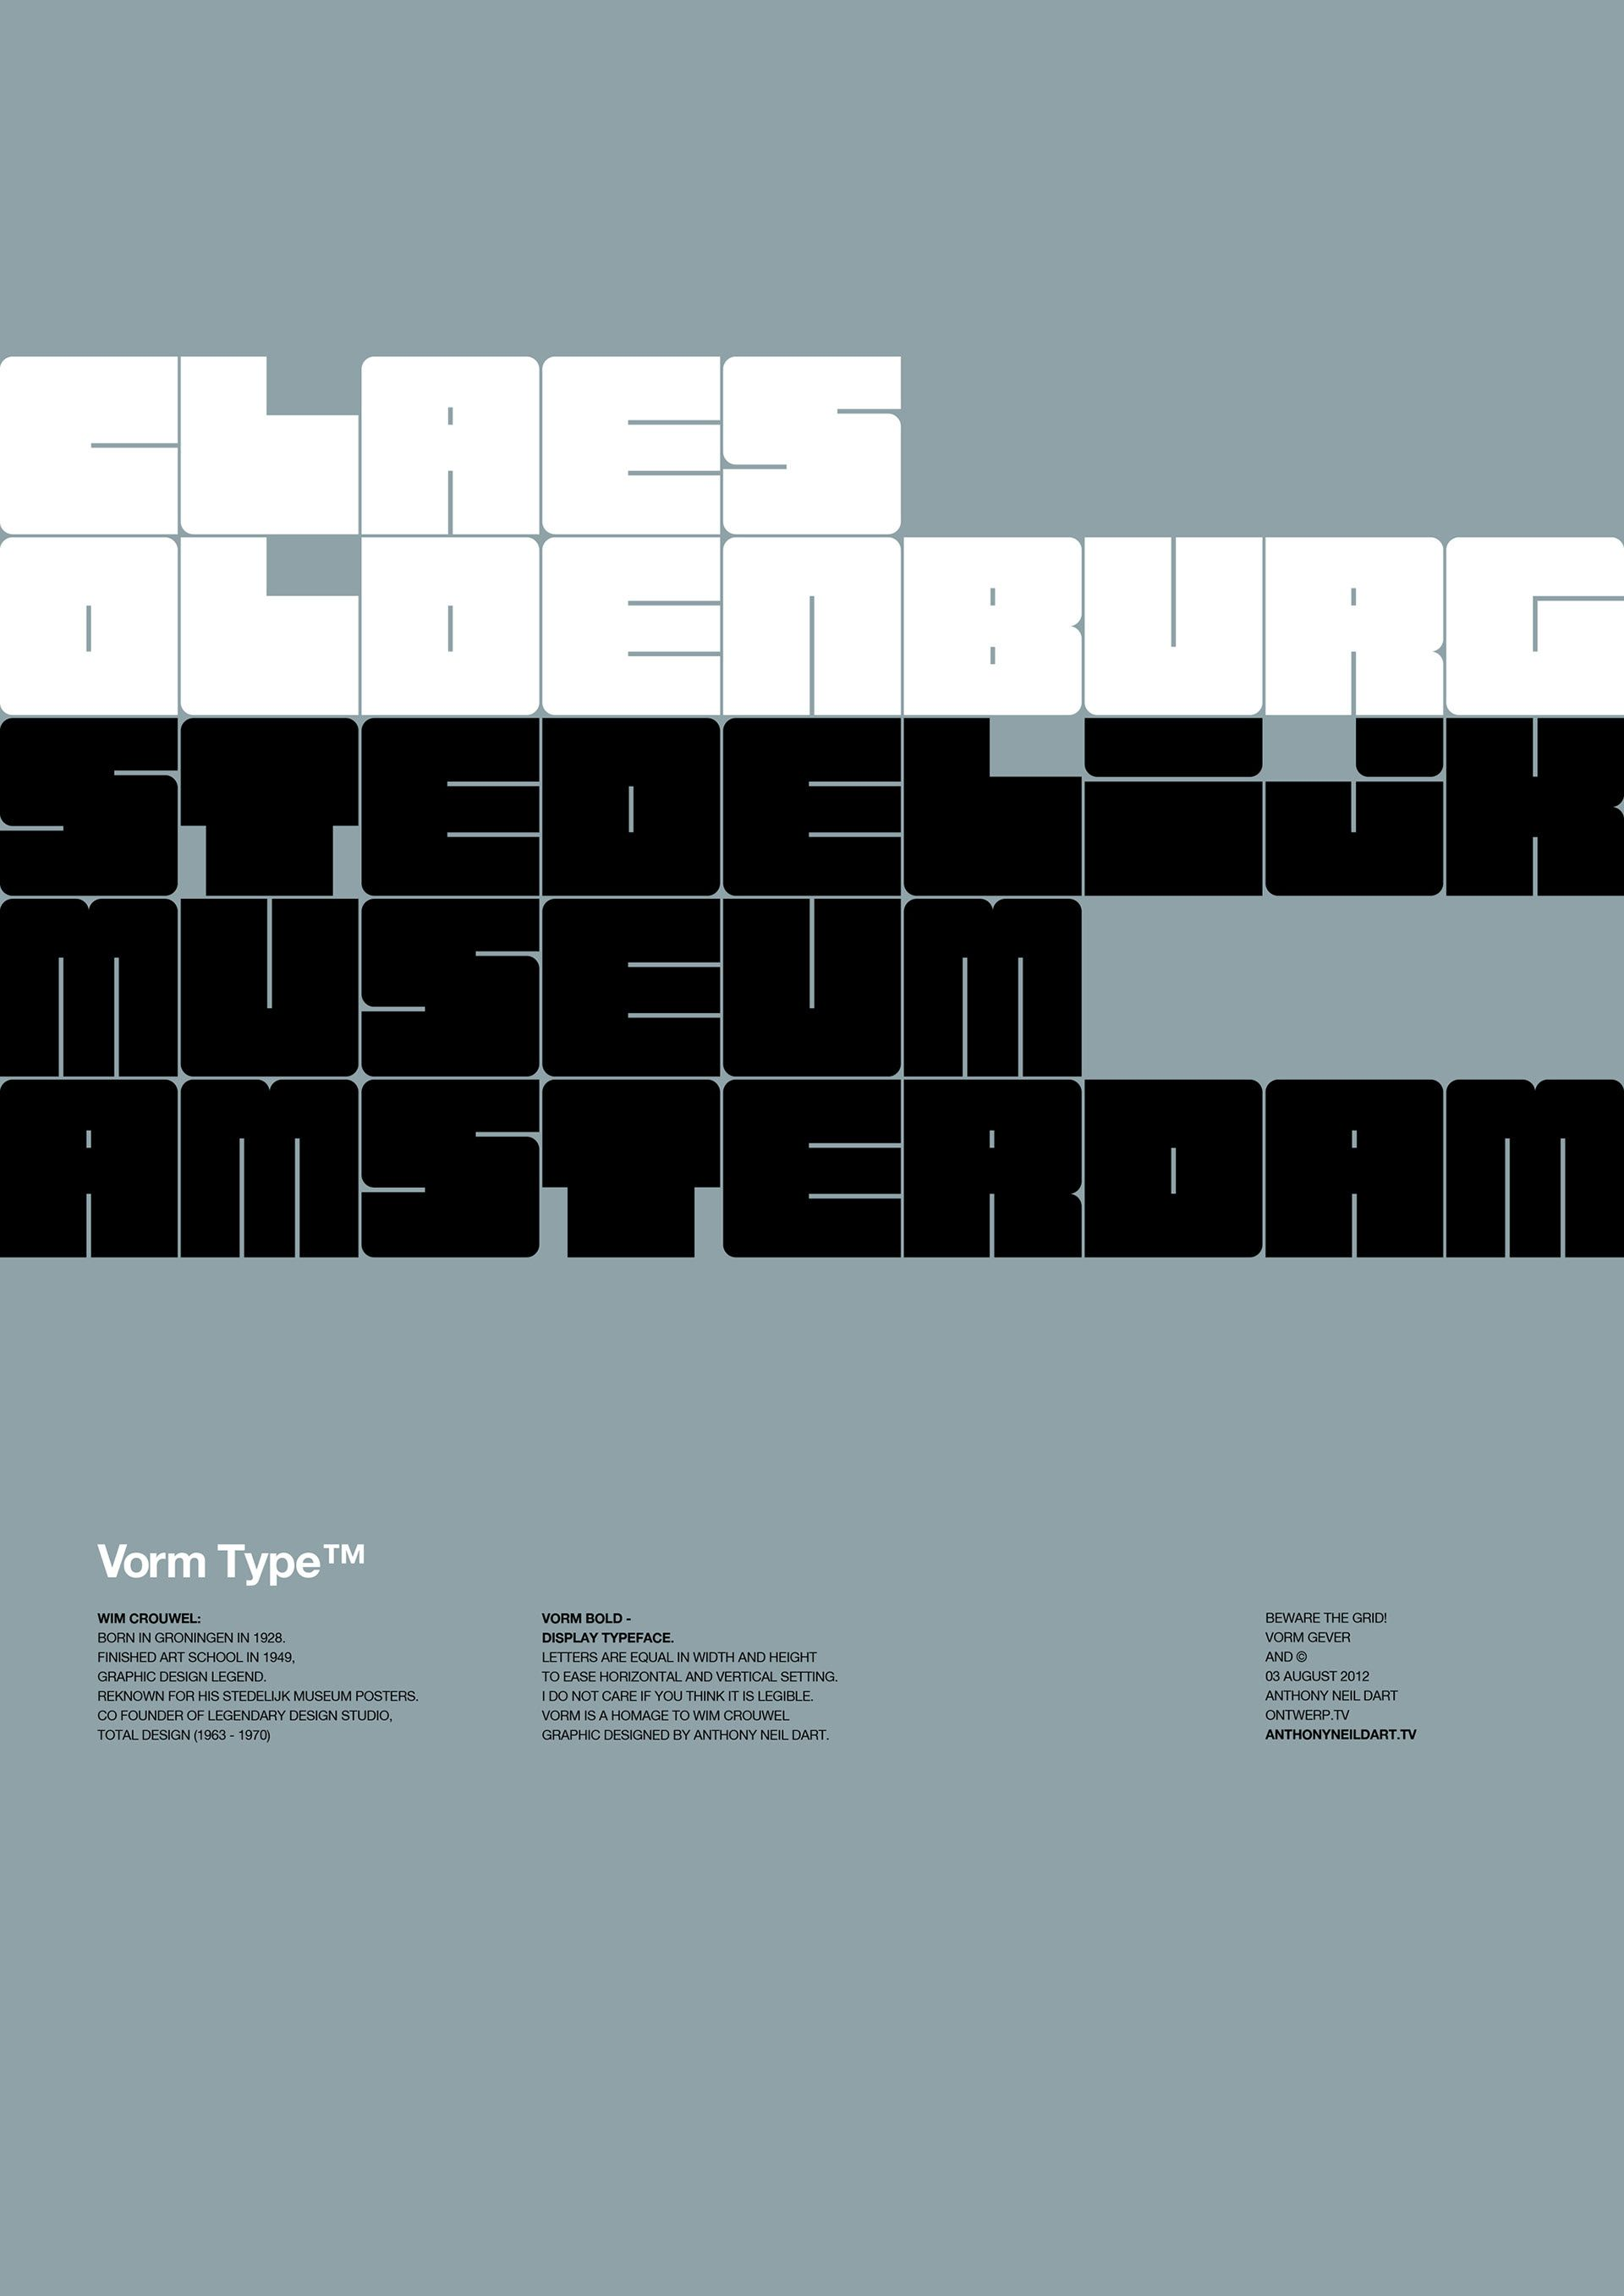 Template Formal Letter%0A Vorm Type    is a display typeface based on a formal grid  The letters occupy  the same amount of space in an attempt to ease vertical and horizontal